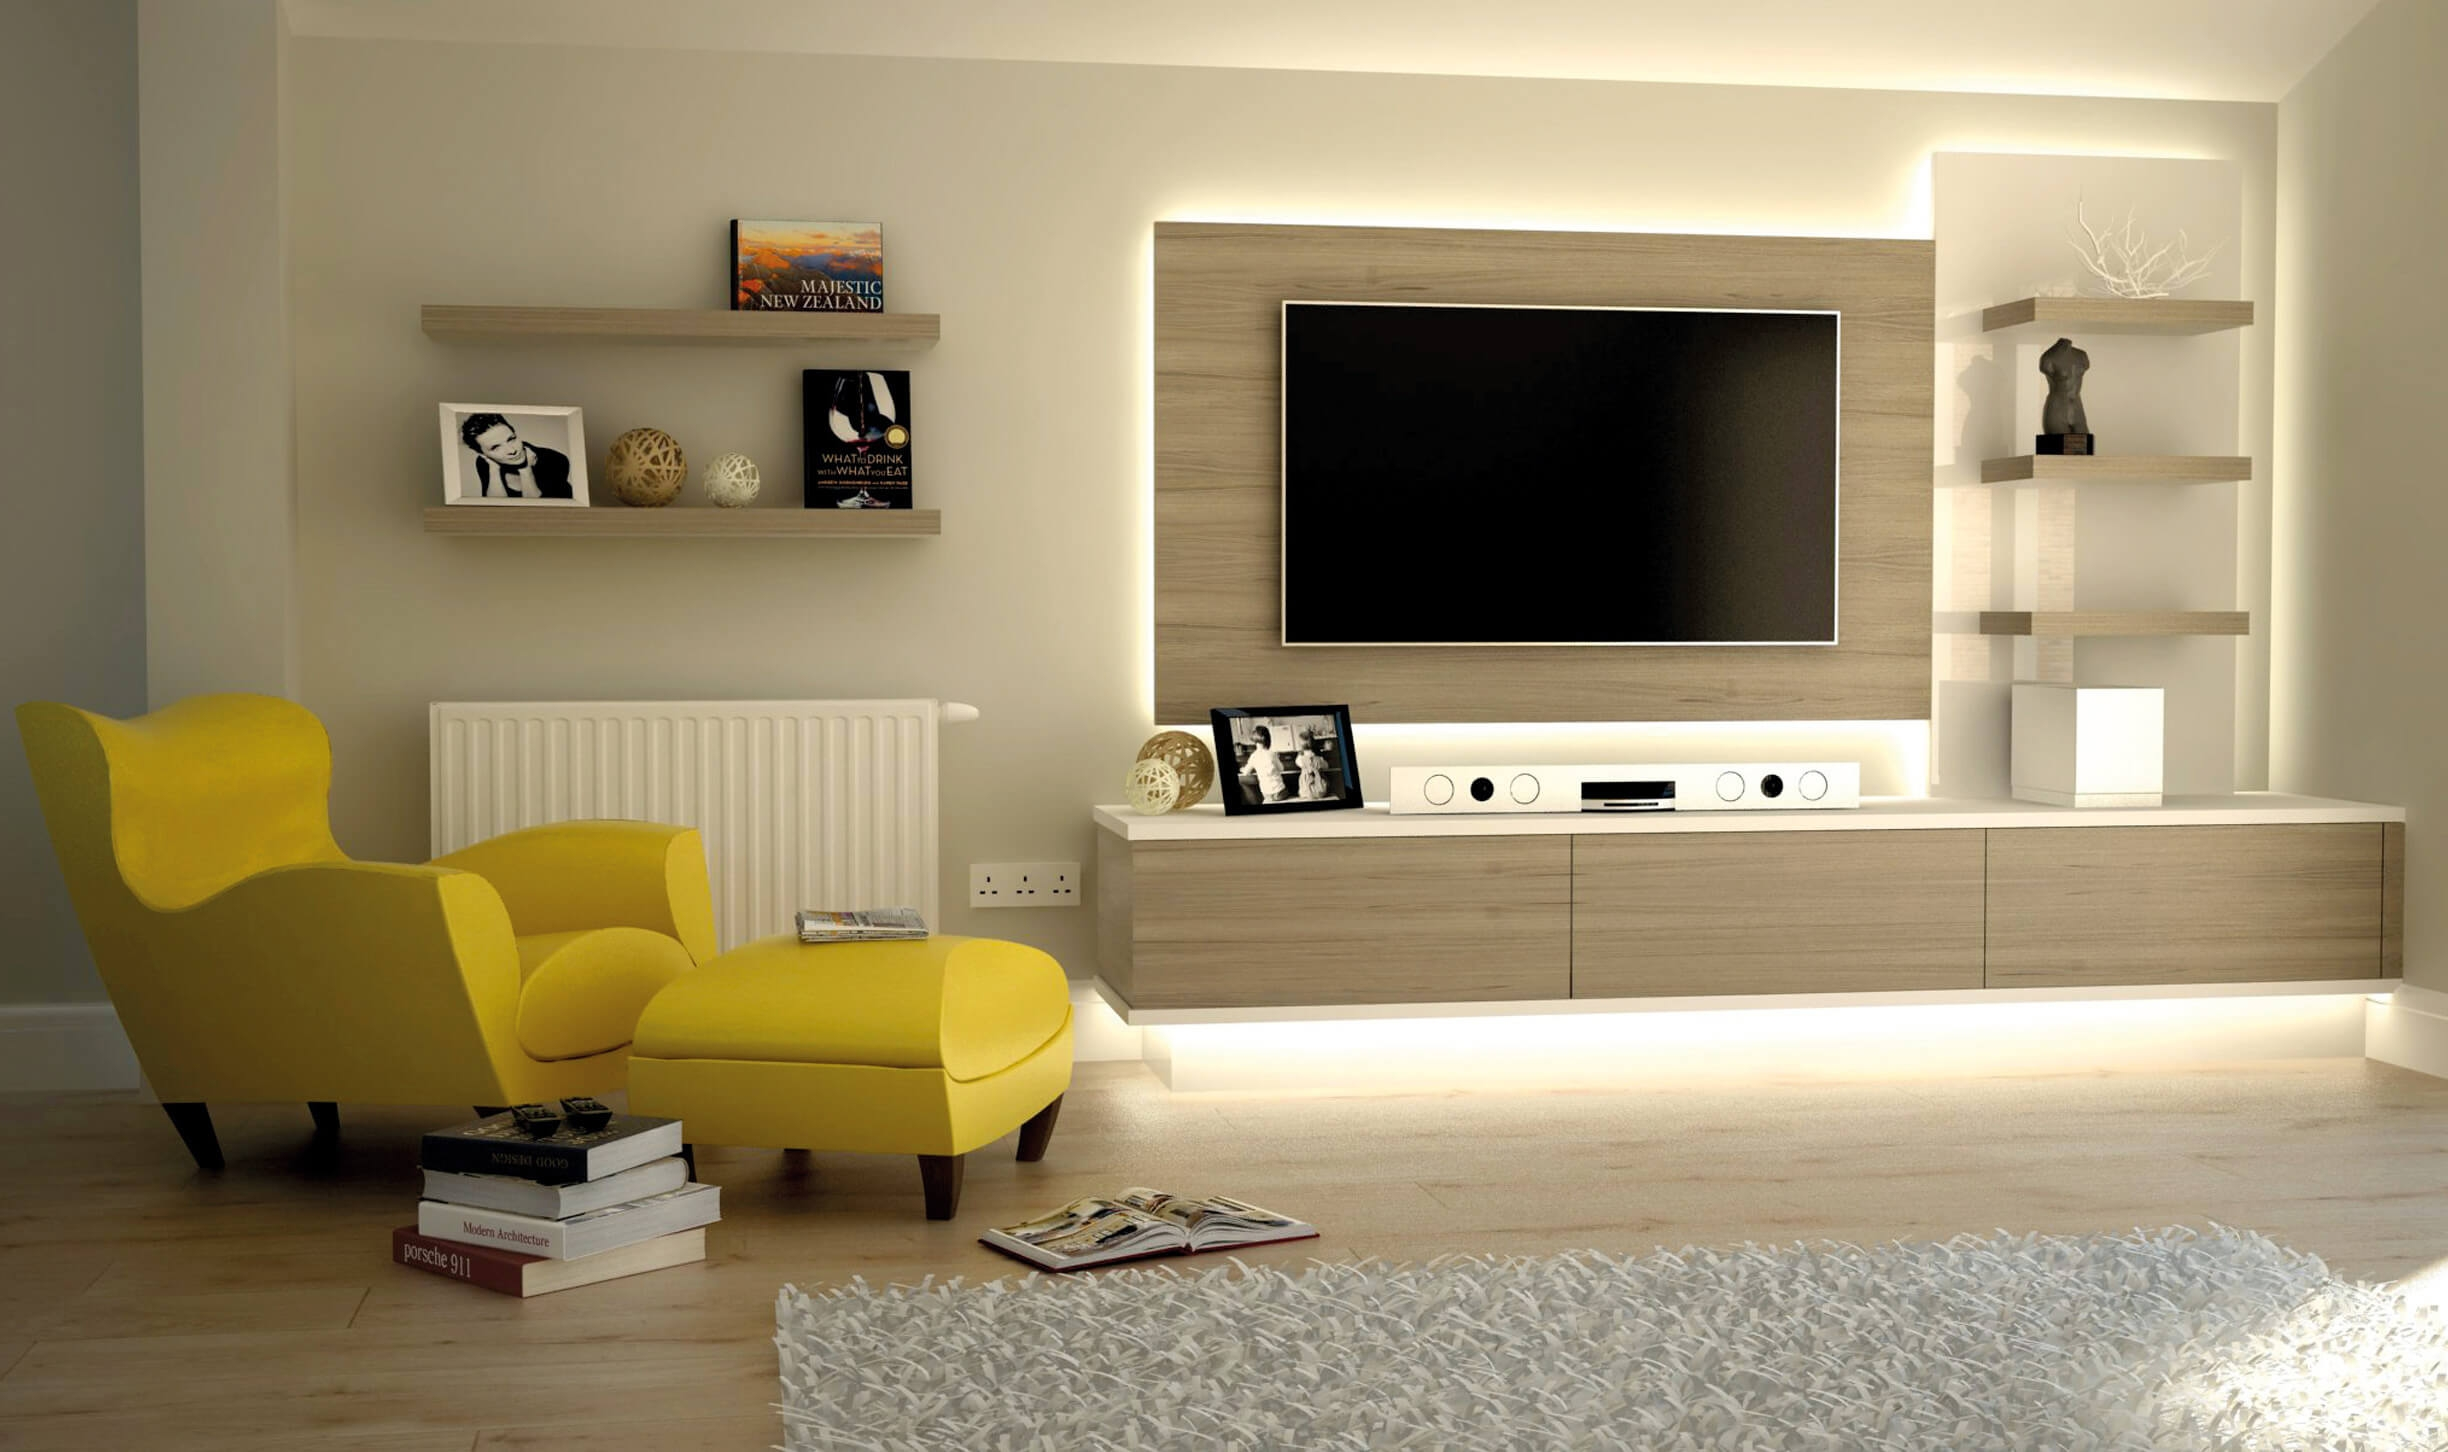 Bespoke Tv Cabinets Bookcases And Storage Units For Over 50 Intended For Bespoke Tv Cabinets (View 2 of 15)